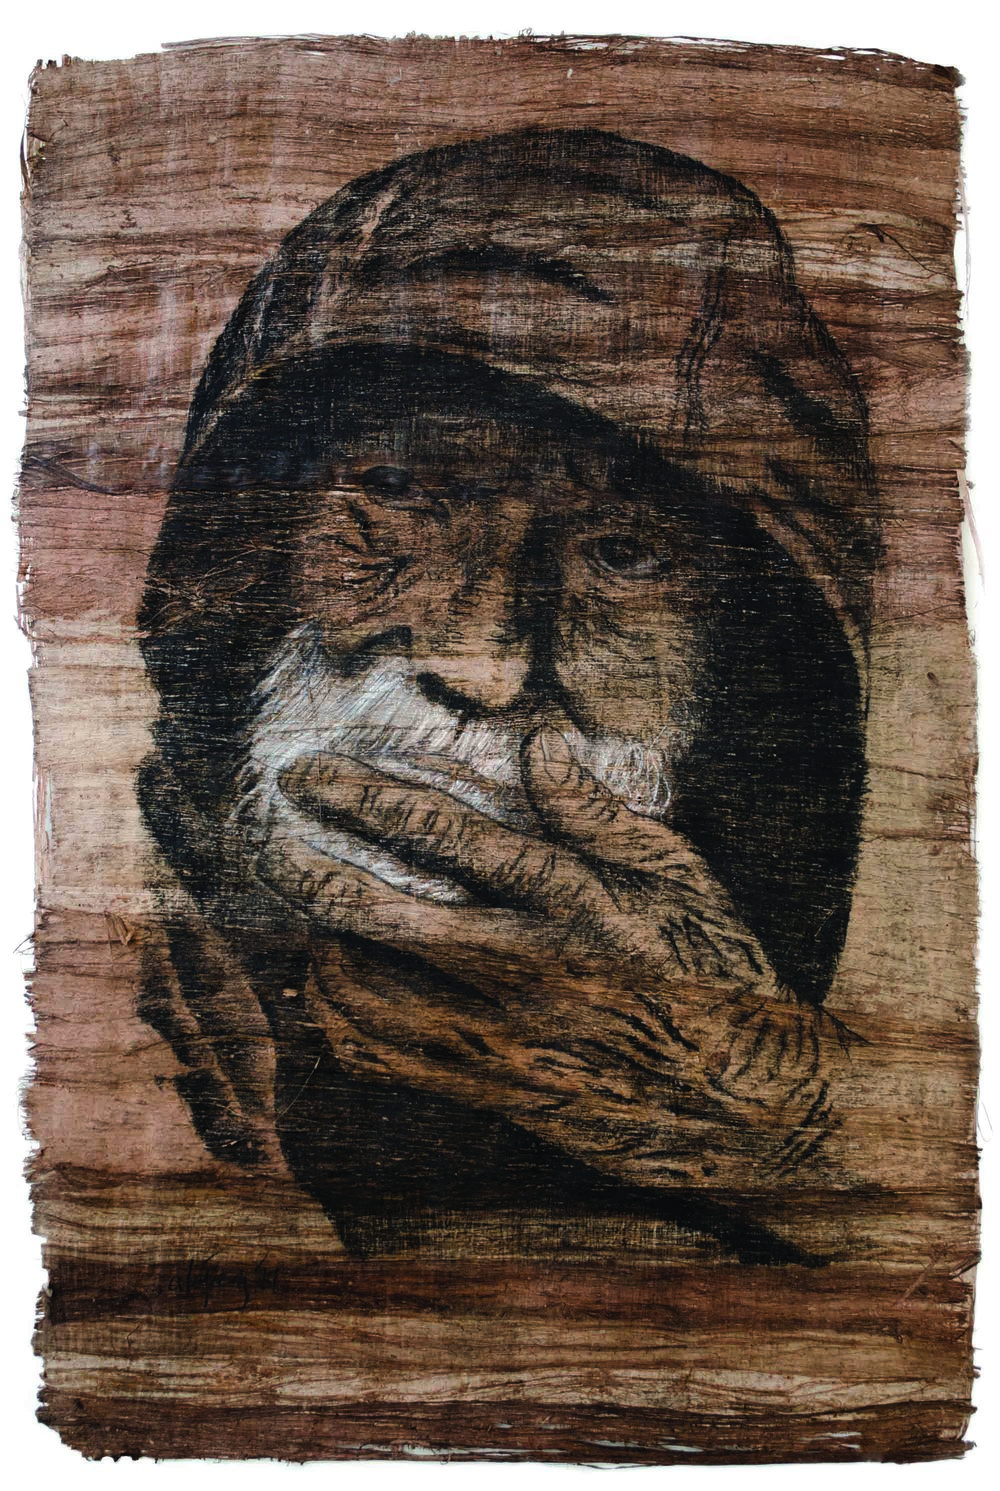 Woodless Man   //  ~16x20in  //  Charcoal over bark wood.